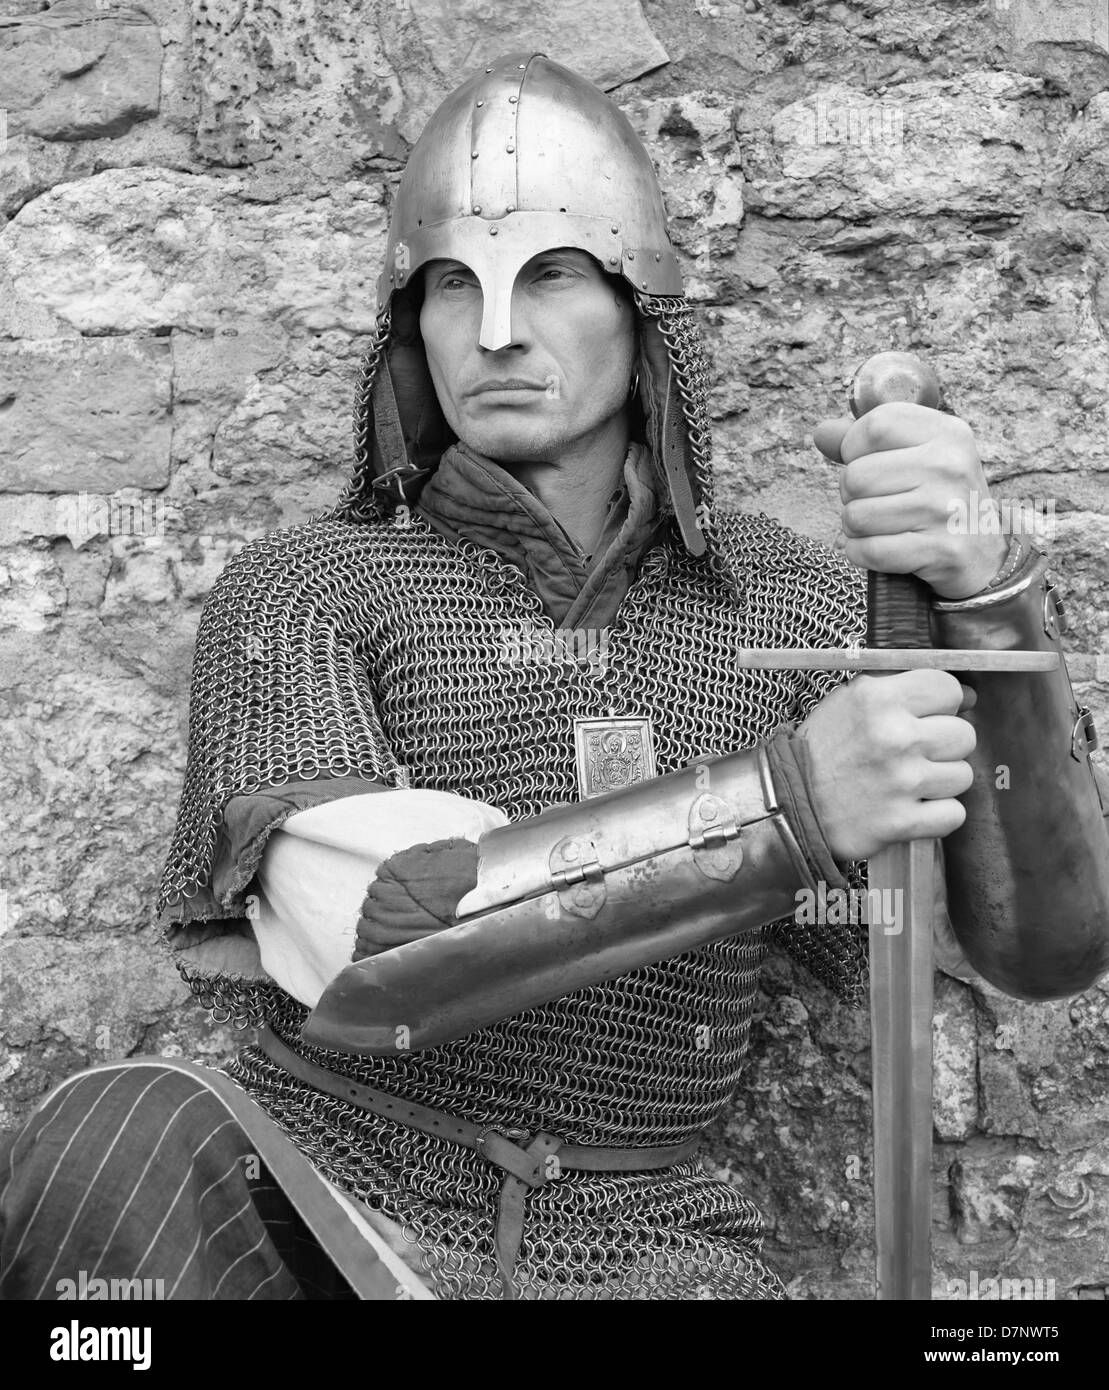 russian man in armor with a sword against the wall of stones stock